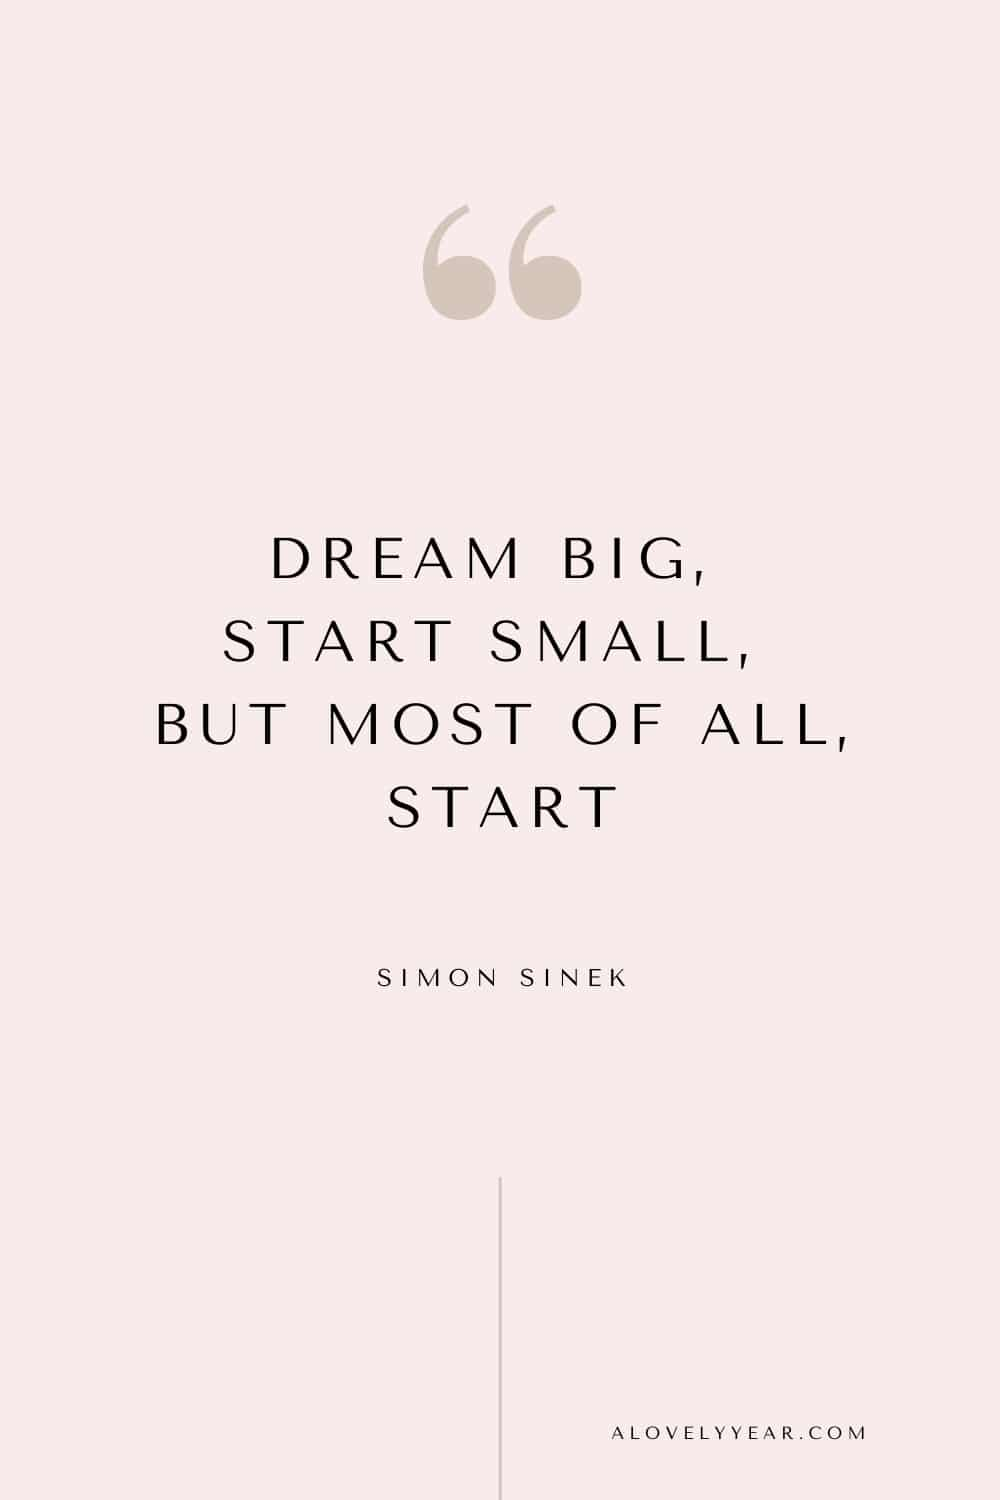 Get things done quote - Dream big, start small, but most of all, start. – Simon Sinek